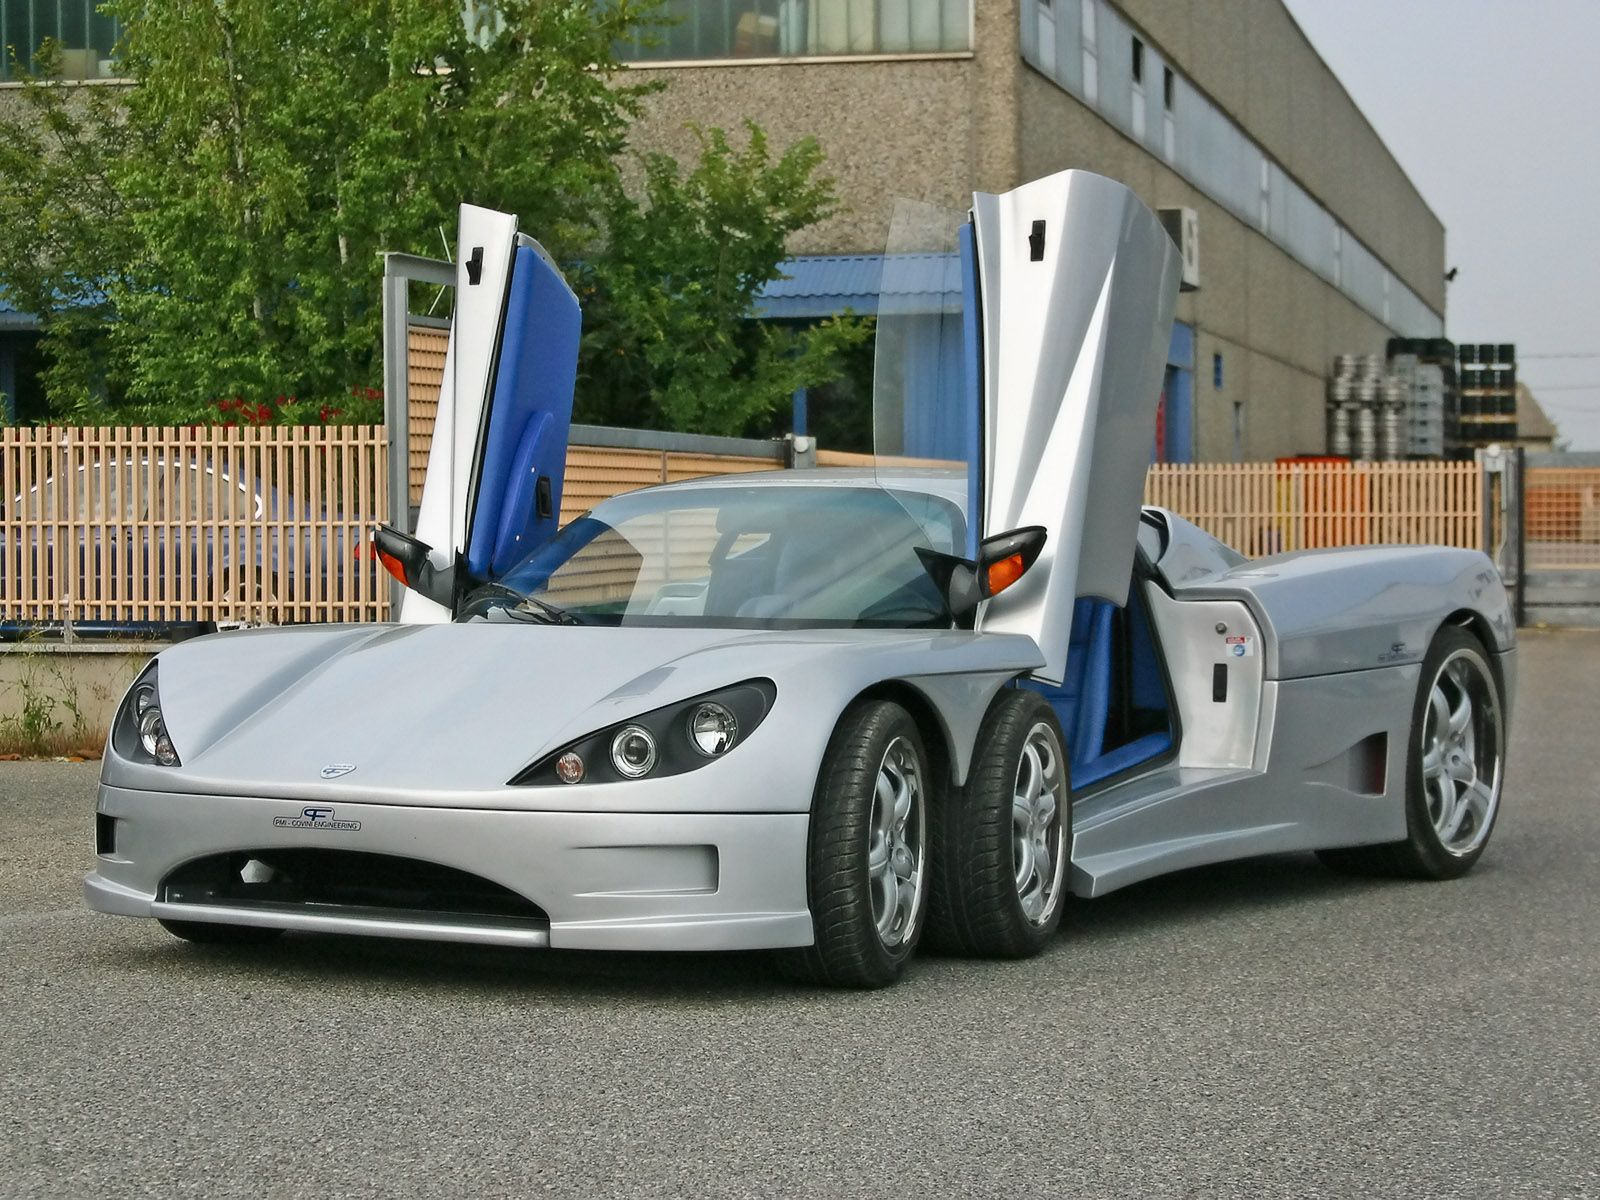 Luxury caravan with full size sports car garage from futuria - Cars